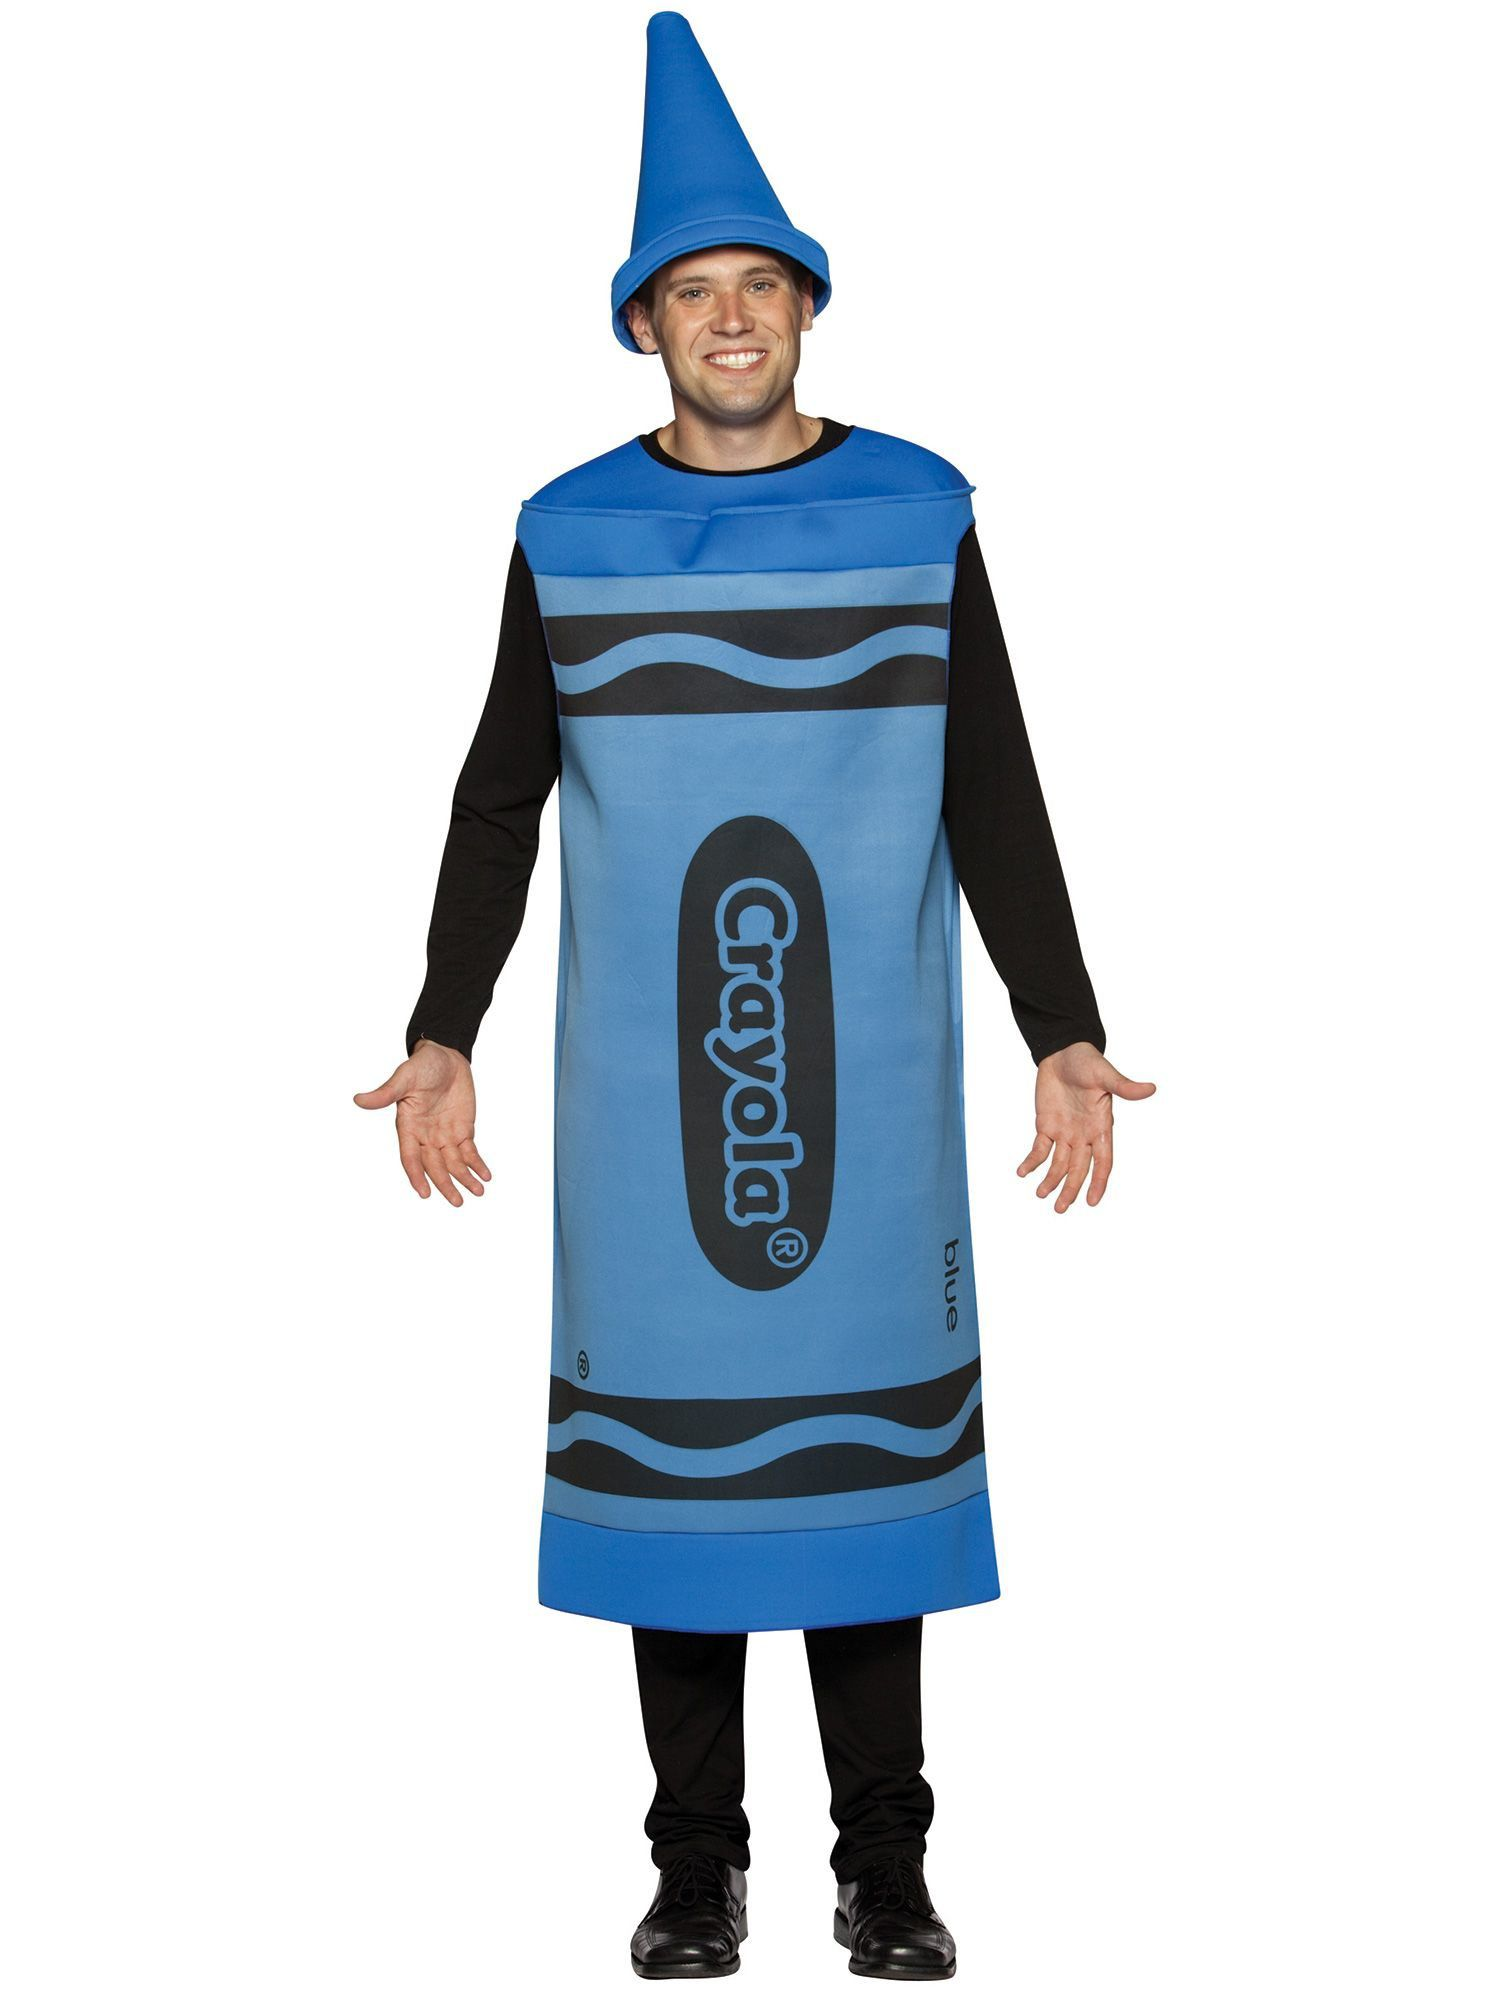 Mens Blue Crayola Crayon Costume  sc 1 st  Wholesale Halloween Costumes & Blue Crayola Crayon Costume - Wholesale Funny Mens Costumes